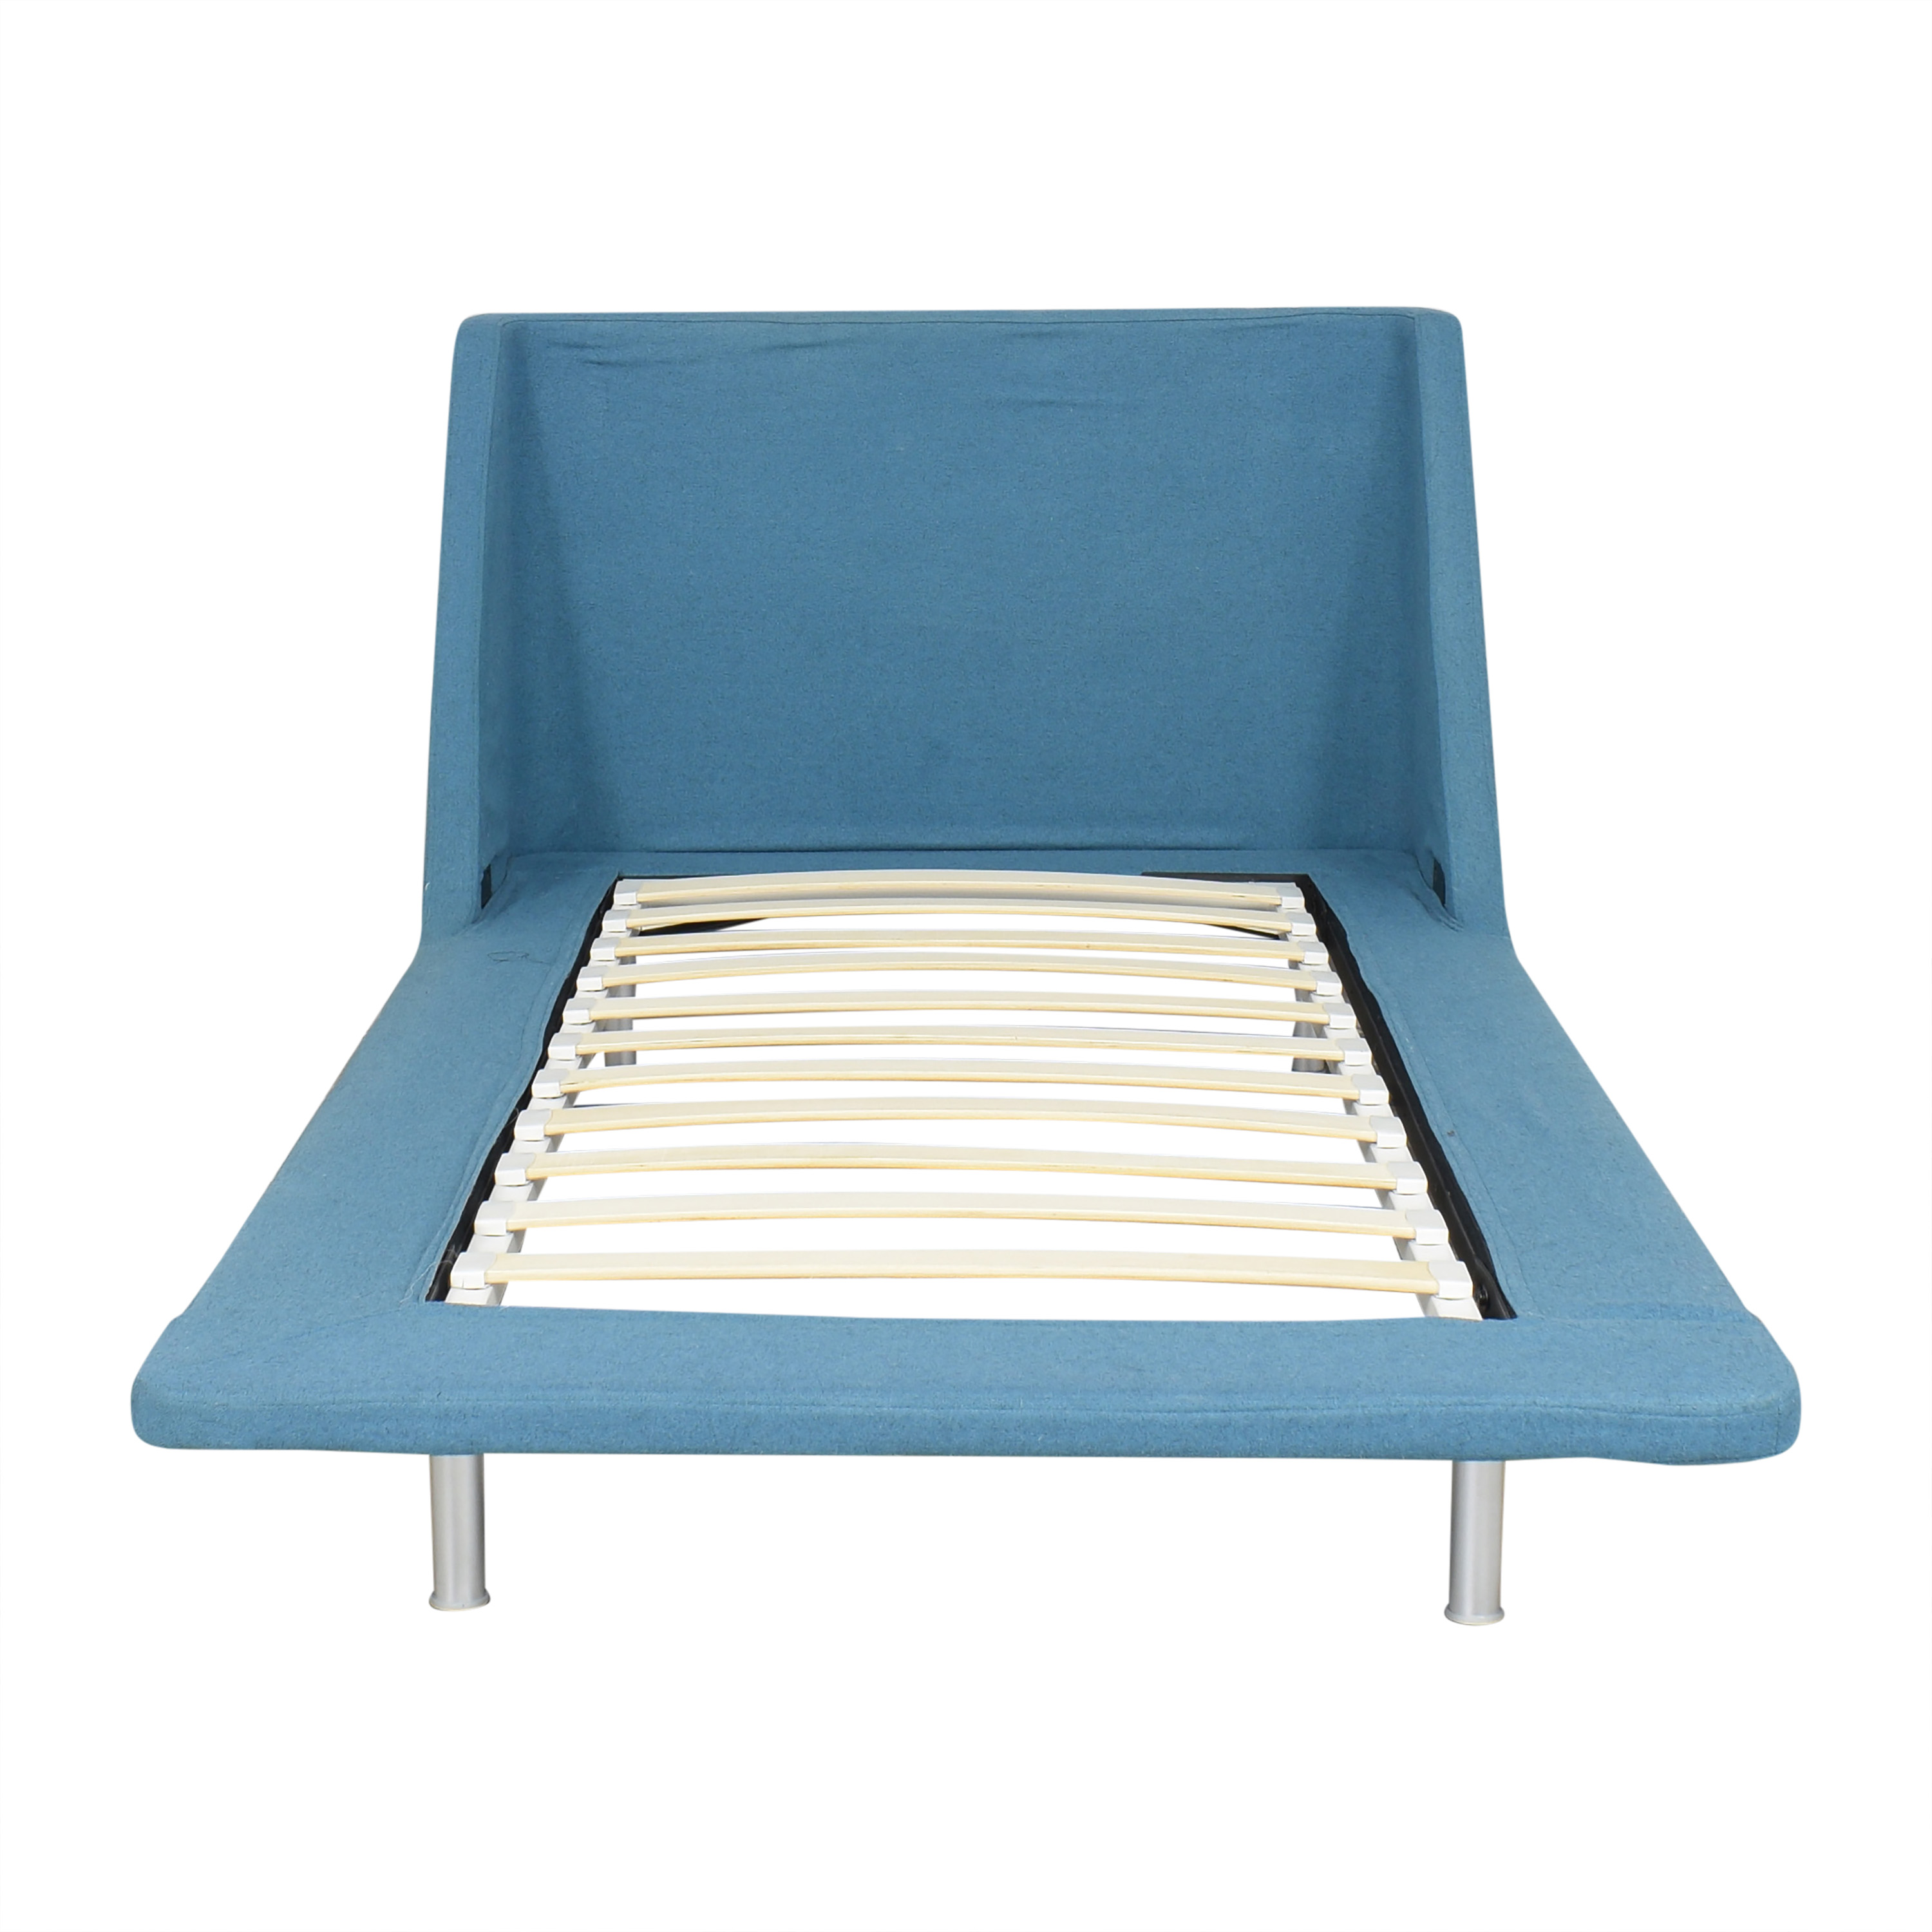 Blu Dot Blu Dot Nook Twin Bed blue